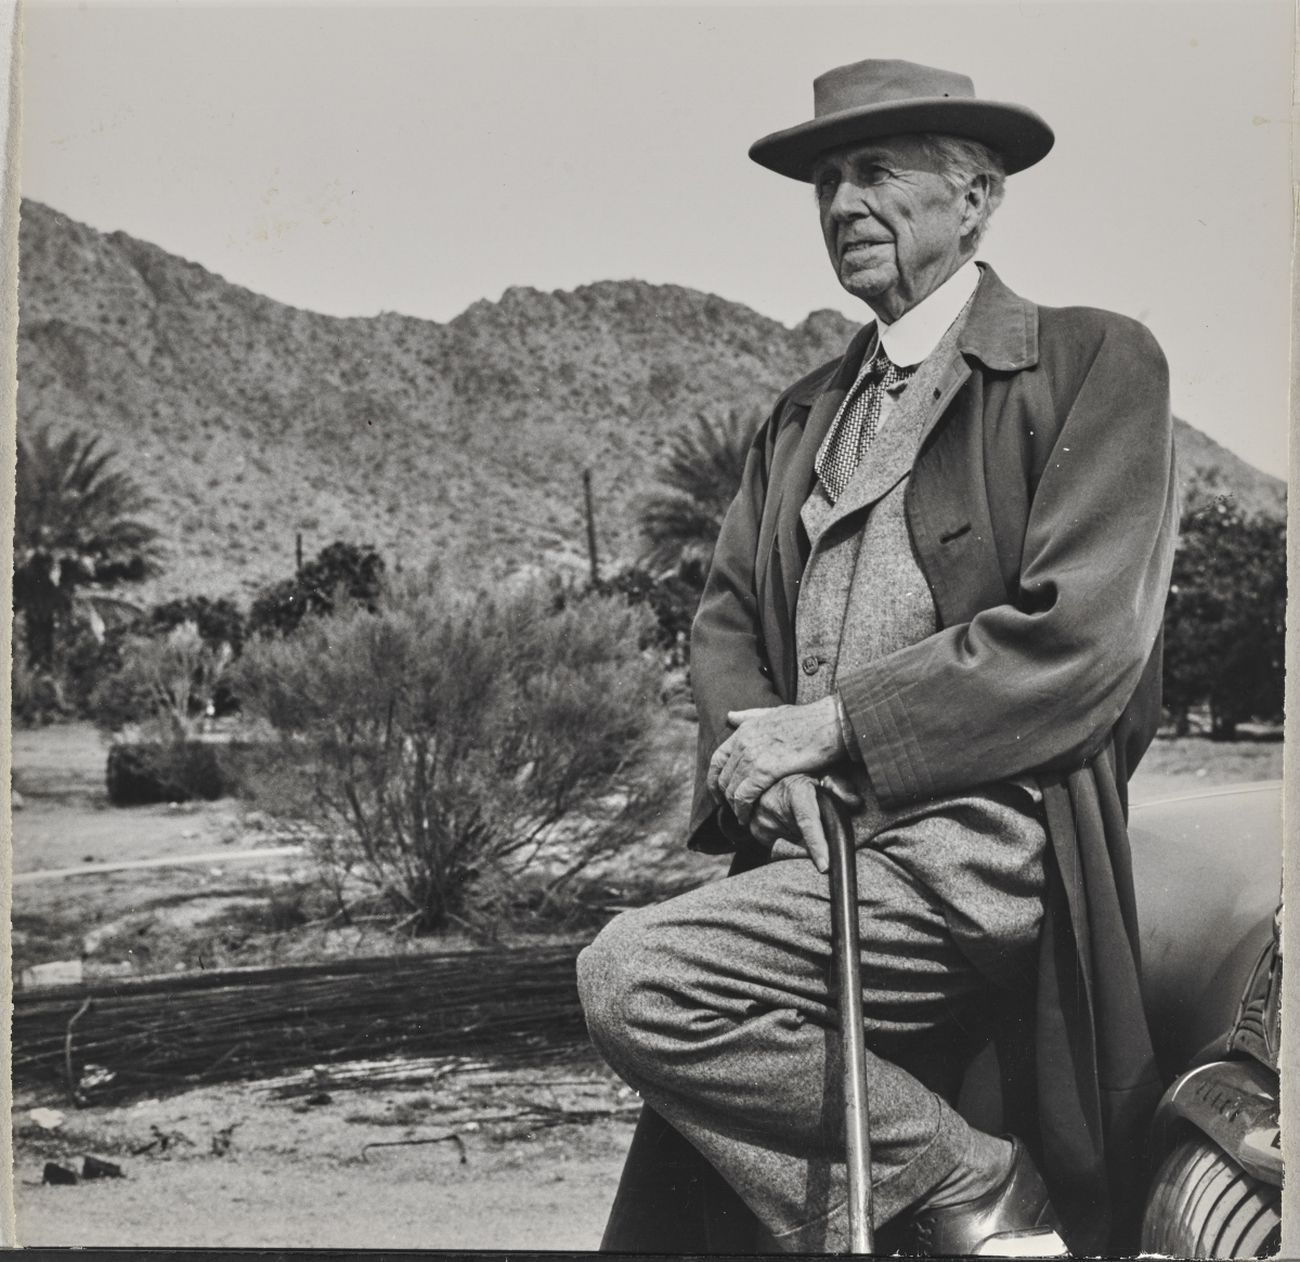 Frank Lloyd Wright at Taliesin West, The Frank Lloyd Wright Foundation Archives (The Museum of Modern Art Avery Architectural & Fine Arts Library, Columbia University, New York)